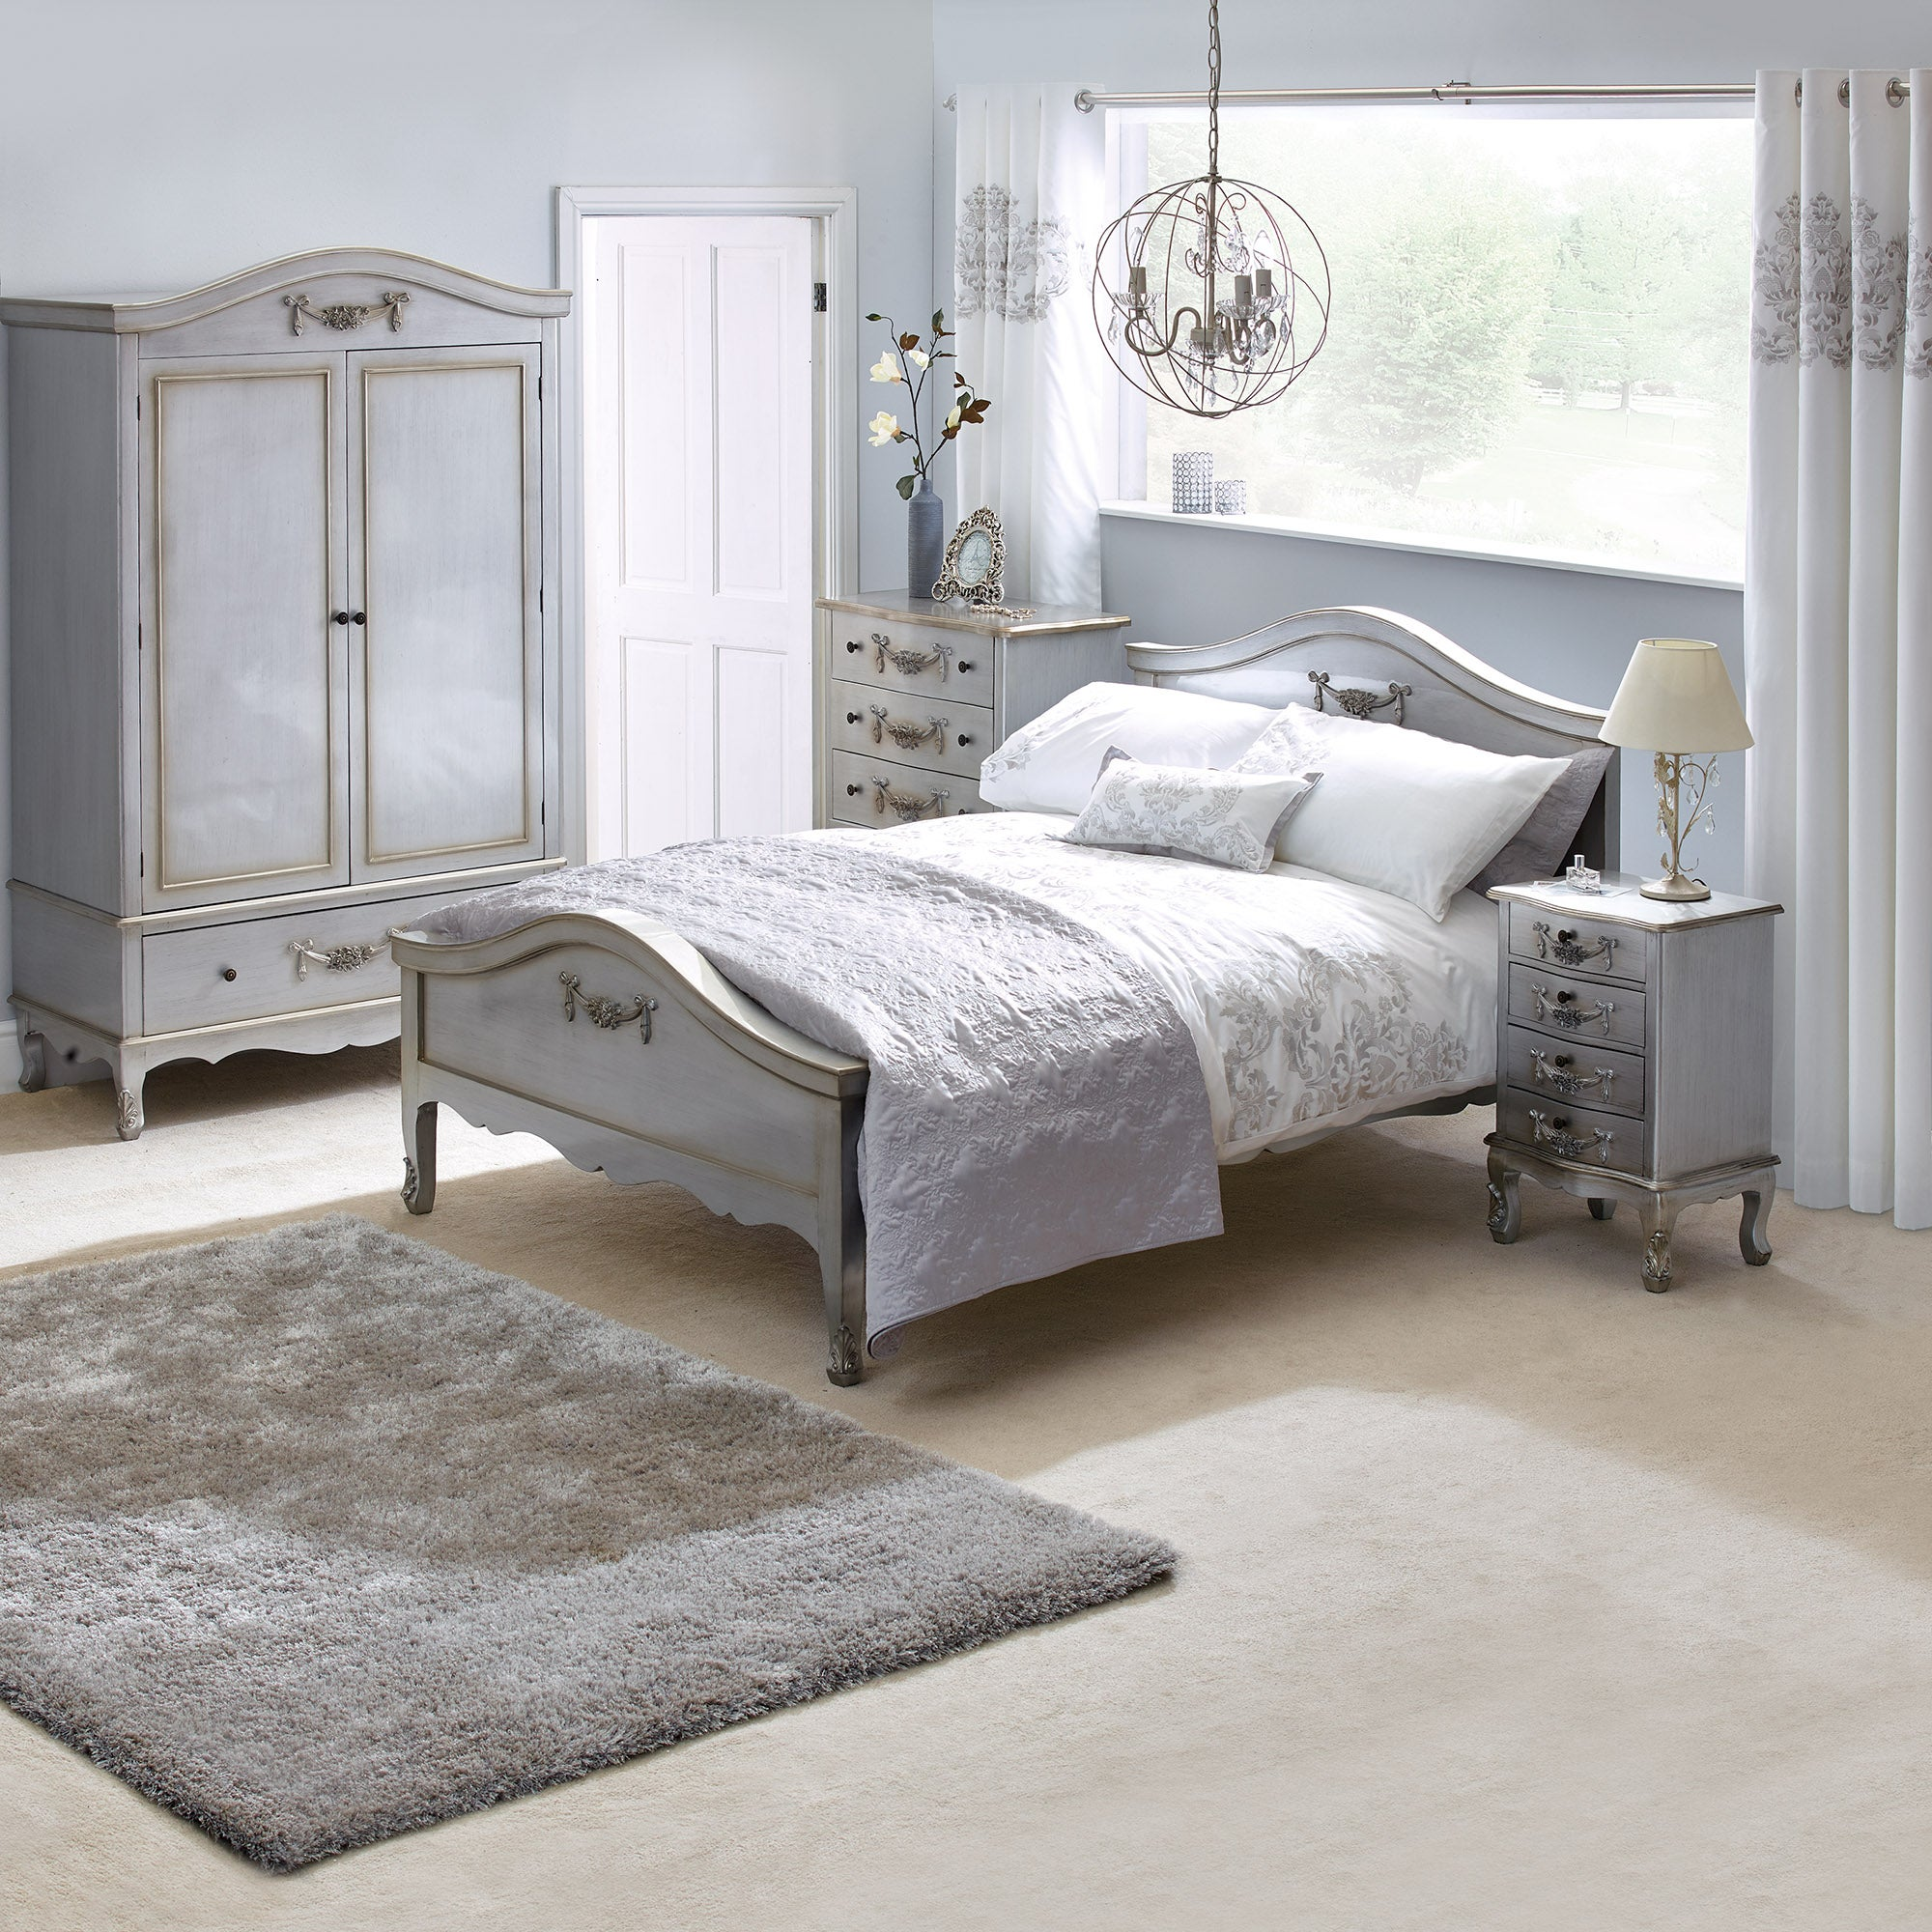 Toulouse Silver Bedroom Collection Dunelm - Toulouse bedroom furniture white